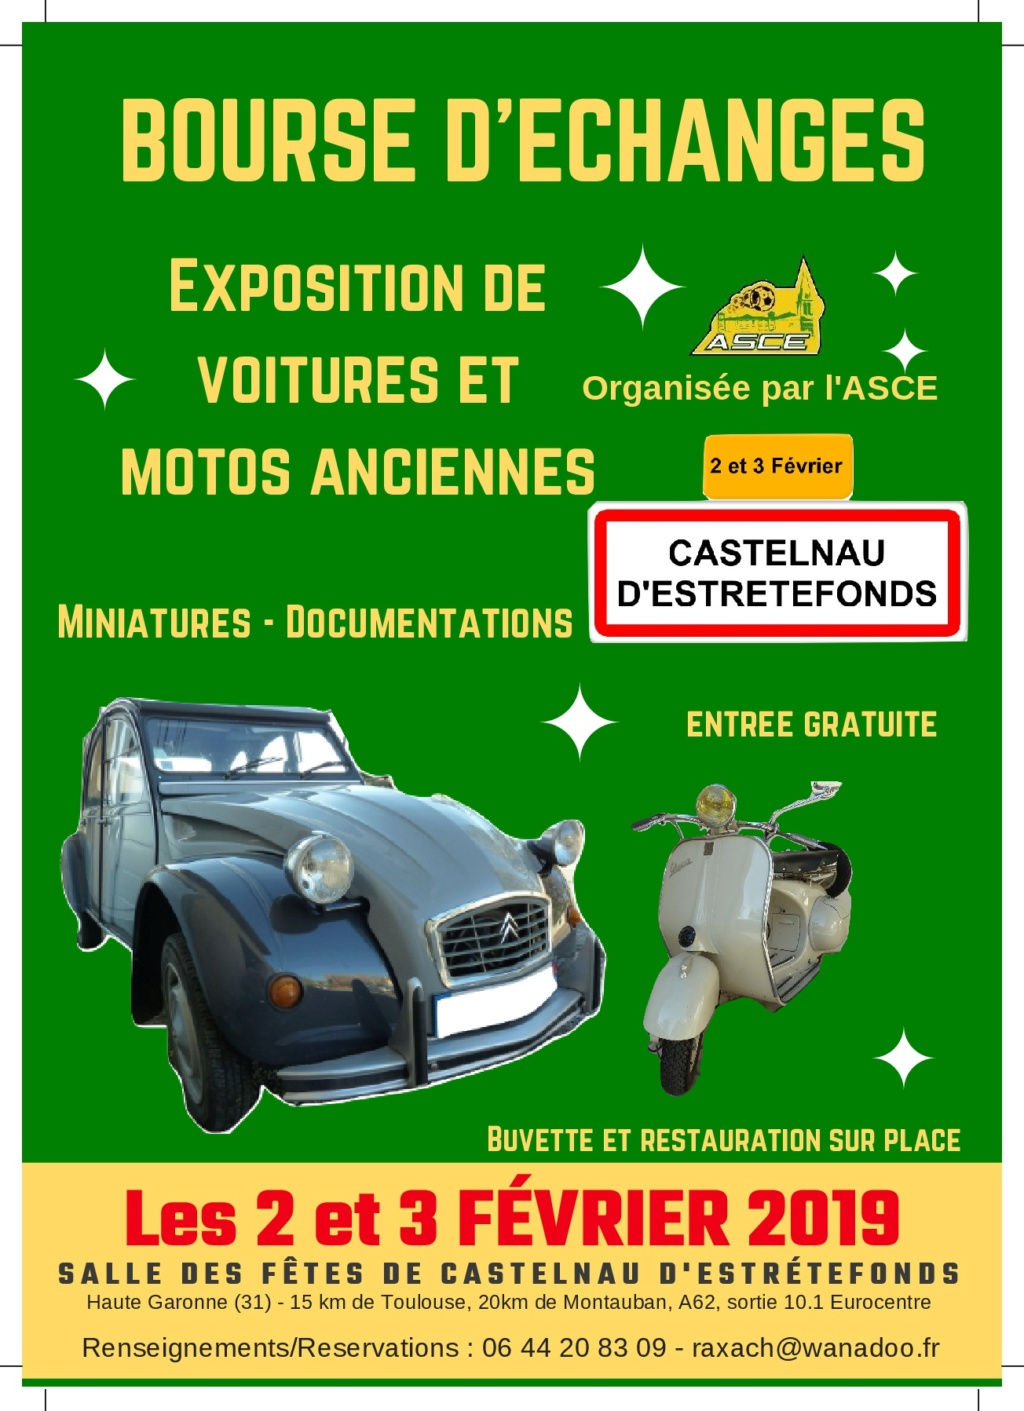 Bourses Expos Rallyes Balades Février 2019 Voitures Anciennes